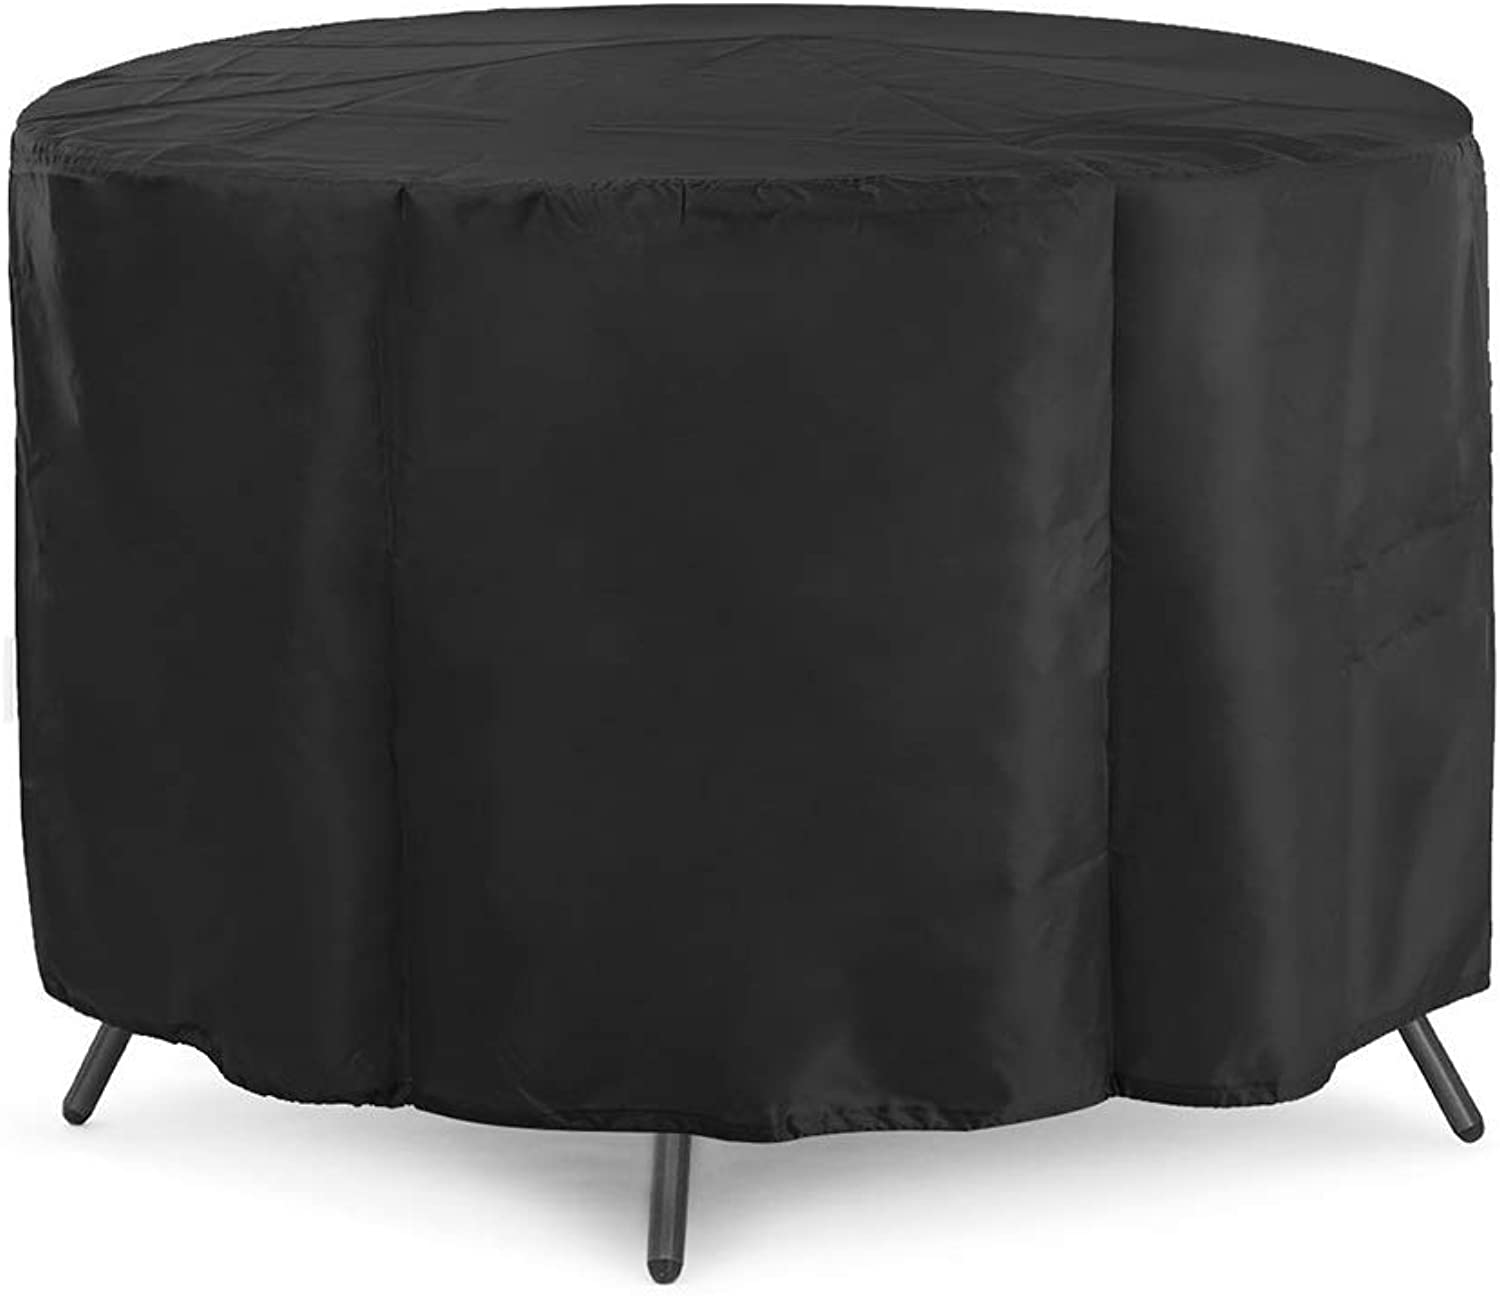 Patio Round Waterproof Furniture Cover, 210D Oxford Cloth Dustproof Table and Chair Cover, Black (Size   185x110cm)